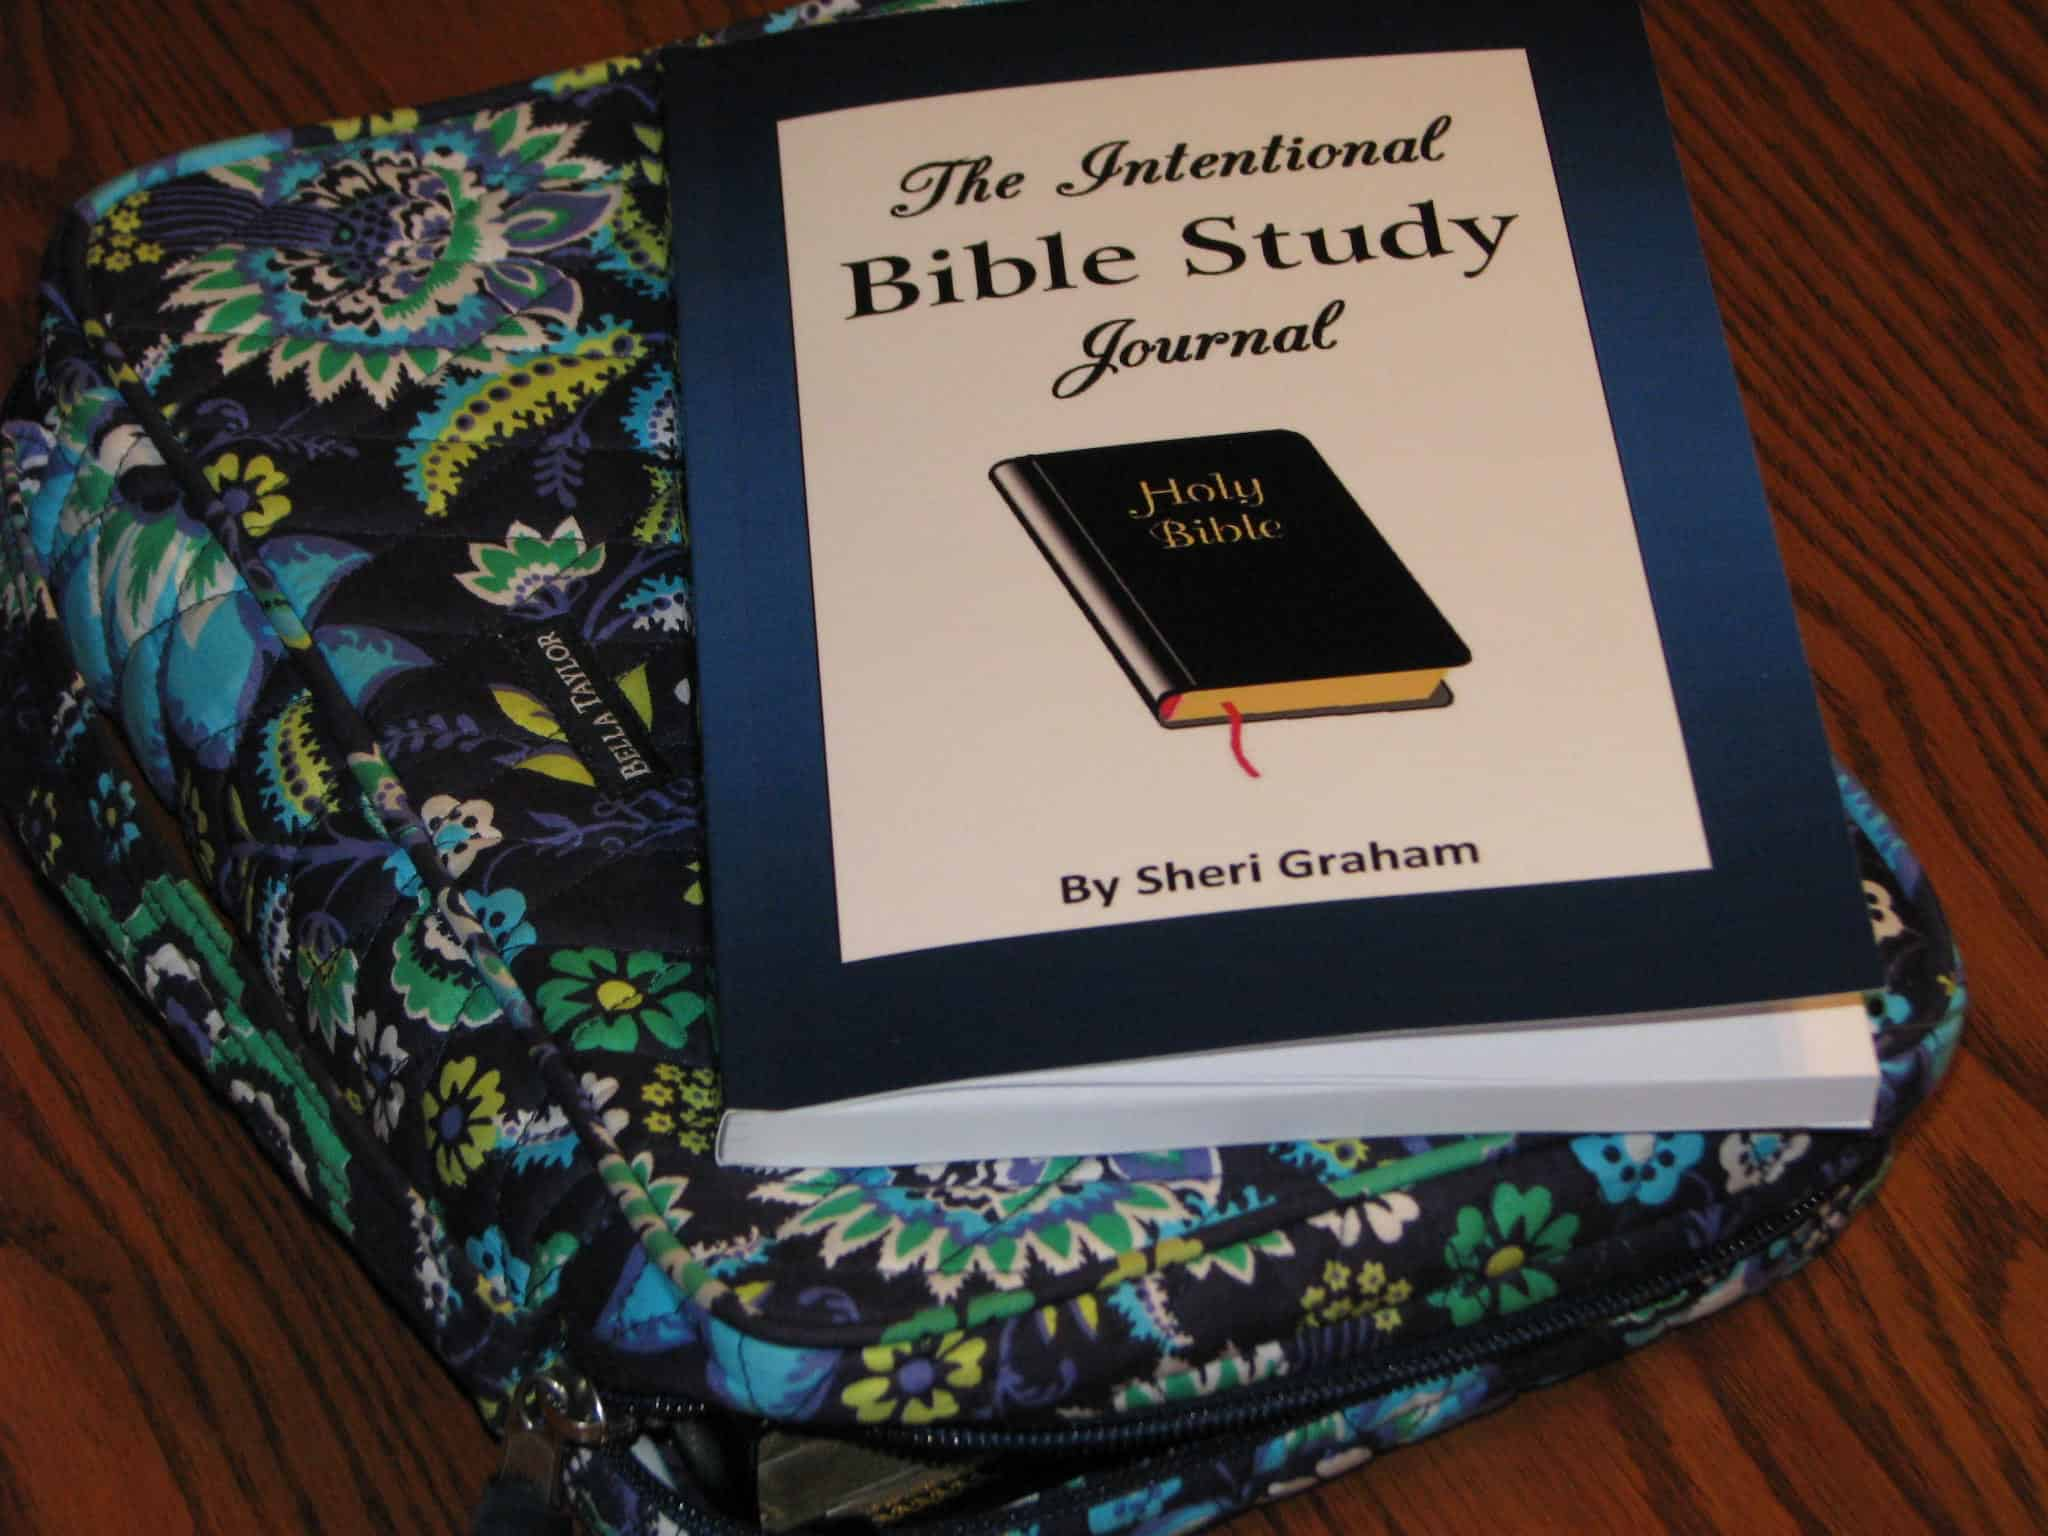 My Study Through 1 & 2 Peter Using The Intentional Bible Study Journal